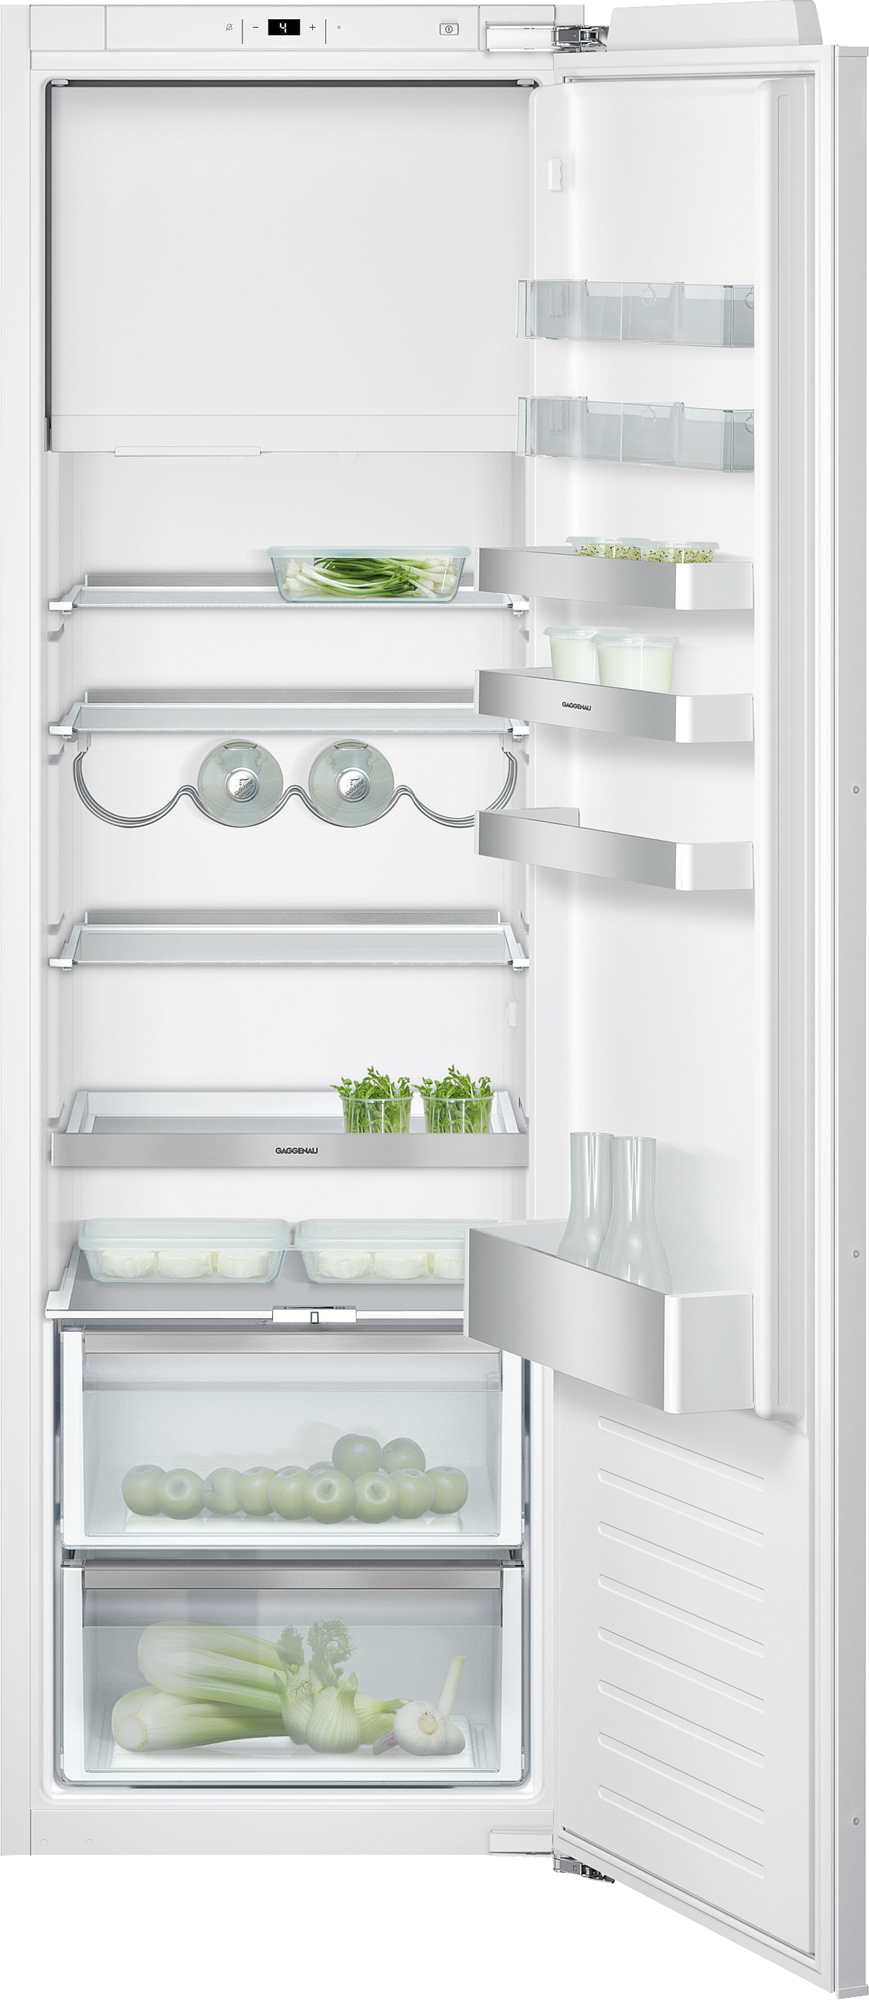 Fridge-freezer combination 200 series with fresh cooling fully integrated Niche width 56 cm, Niche height 177.5 cm RT282203